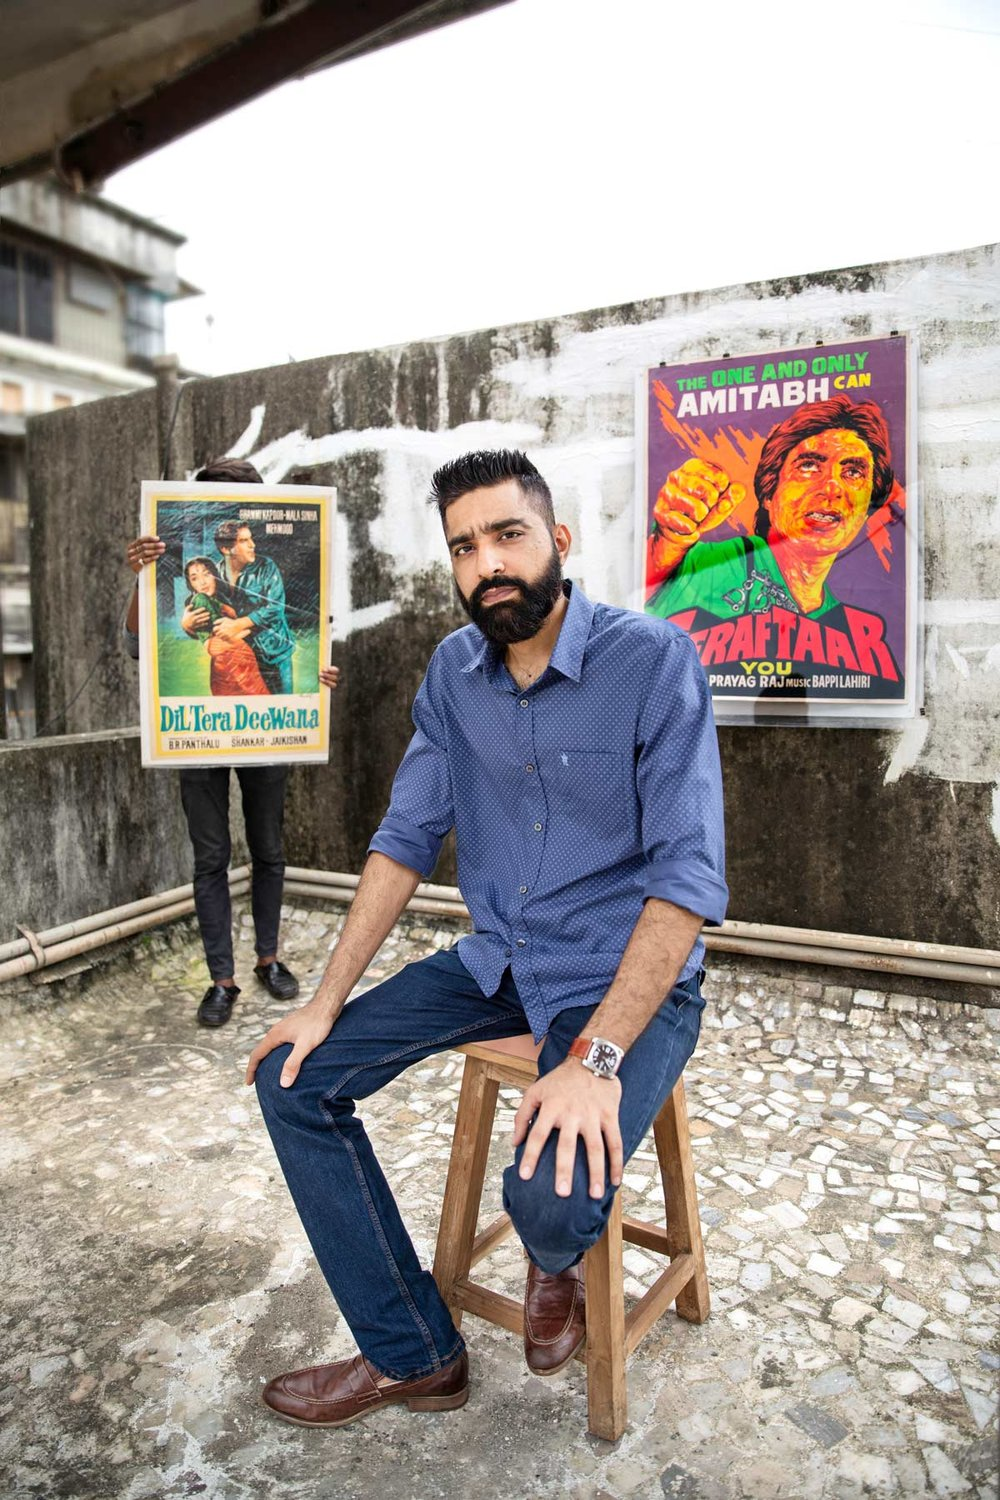 """HINESH JETHWANI FOUNDER, INDIAN HIPPY Before Photoshop and hi-res prints, vivid hand-painted posters were what greeted moviegoers. When the 2008 recession hit India, Jethwani's IT business tanked, and he began tracking down the artists behind these old posters. """"They were close to retiring for good,"""" he recalls. """"Many had given up the paintbrush several years ago and changed careers."""" Indian Hippy, a collective of Hindi movie poster artists, was the result of these conversations. """"We wanted to get the younger generation fascinated and inquisitive about this beautiful hand-painted art form that existed much before the multiplex cinema culture came into vogue,"""" Jethwani says. It's worked, too—over nine years, Indian Hippy has played an important role in upping the ante on vintage movie poster art appreciation. Their repertoire now includes customised portraits as well as elaborate 20kg wall canvases for restaurants. Jethwani is well aware that this may not last forever—only four out of the 12 artists who formed the collective remain. But he hopes that younger artists will pick up the craft and help ensure its survival."""